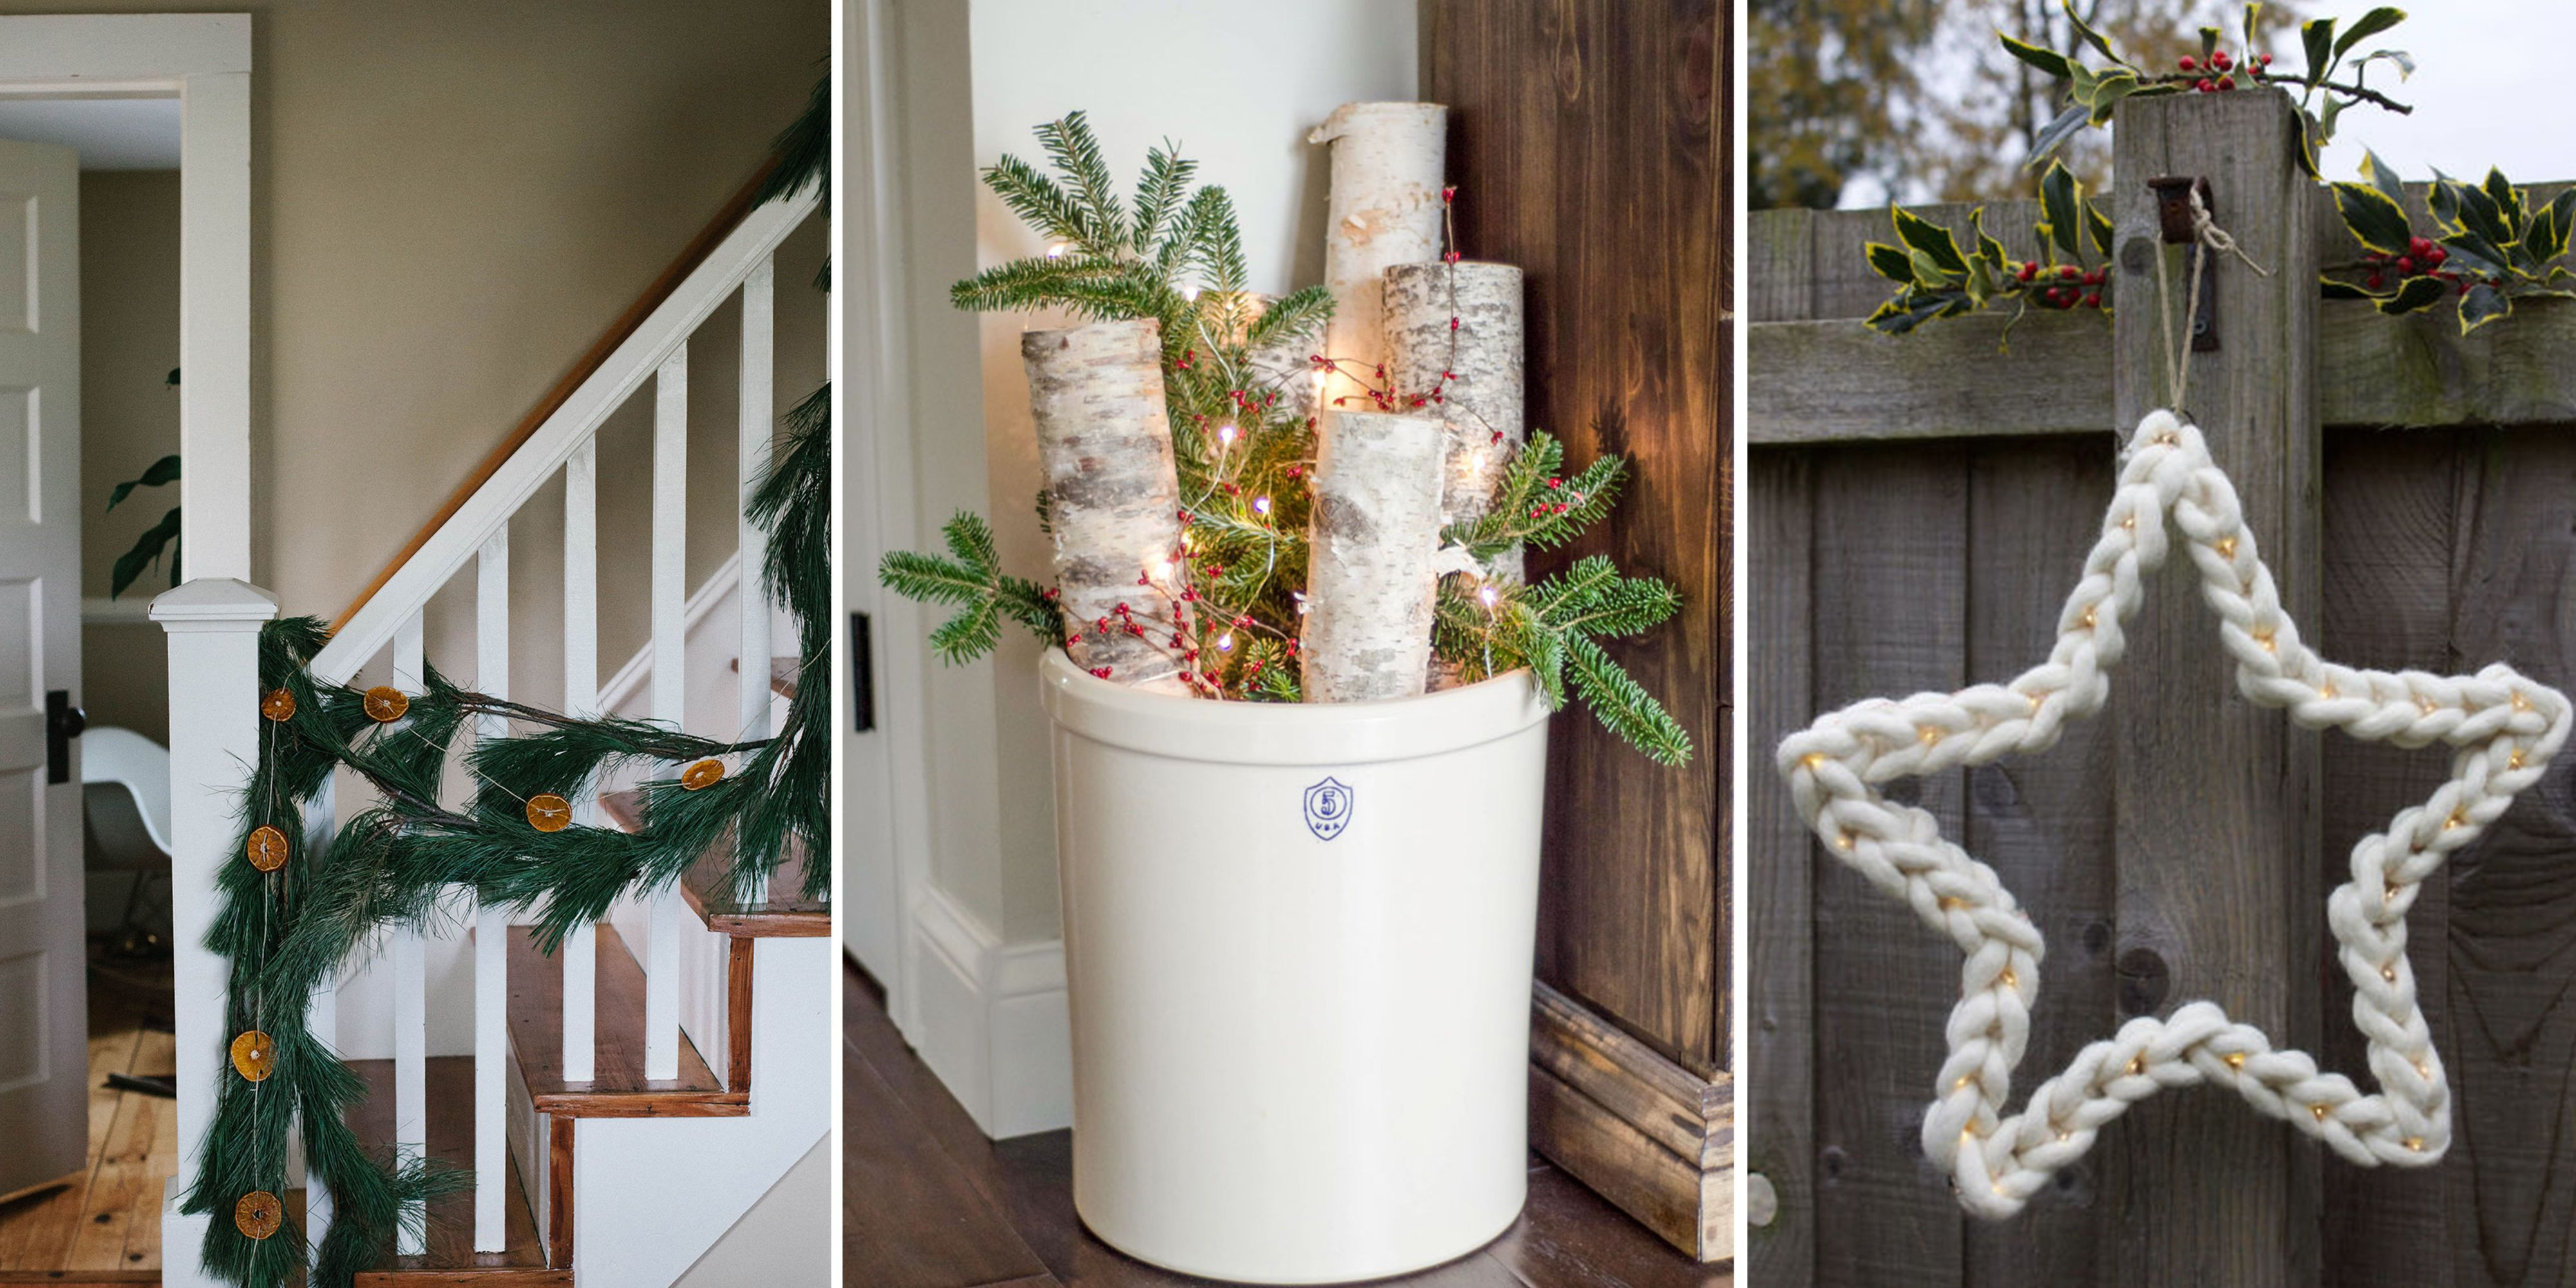 25 Winter Decorating Ideas   How to Decorate Your Home for Winter winter decor ideas